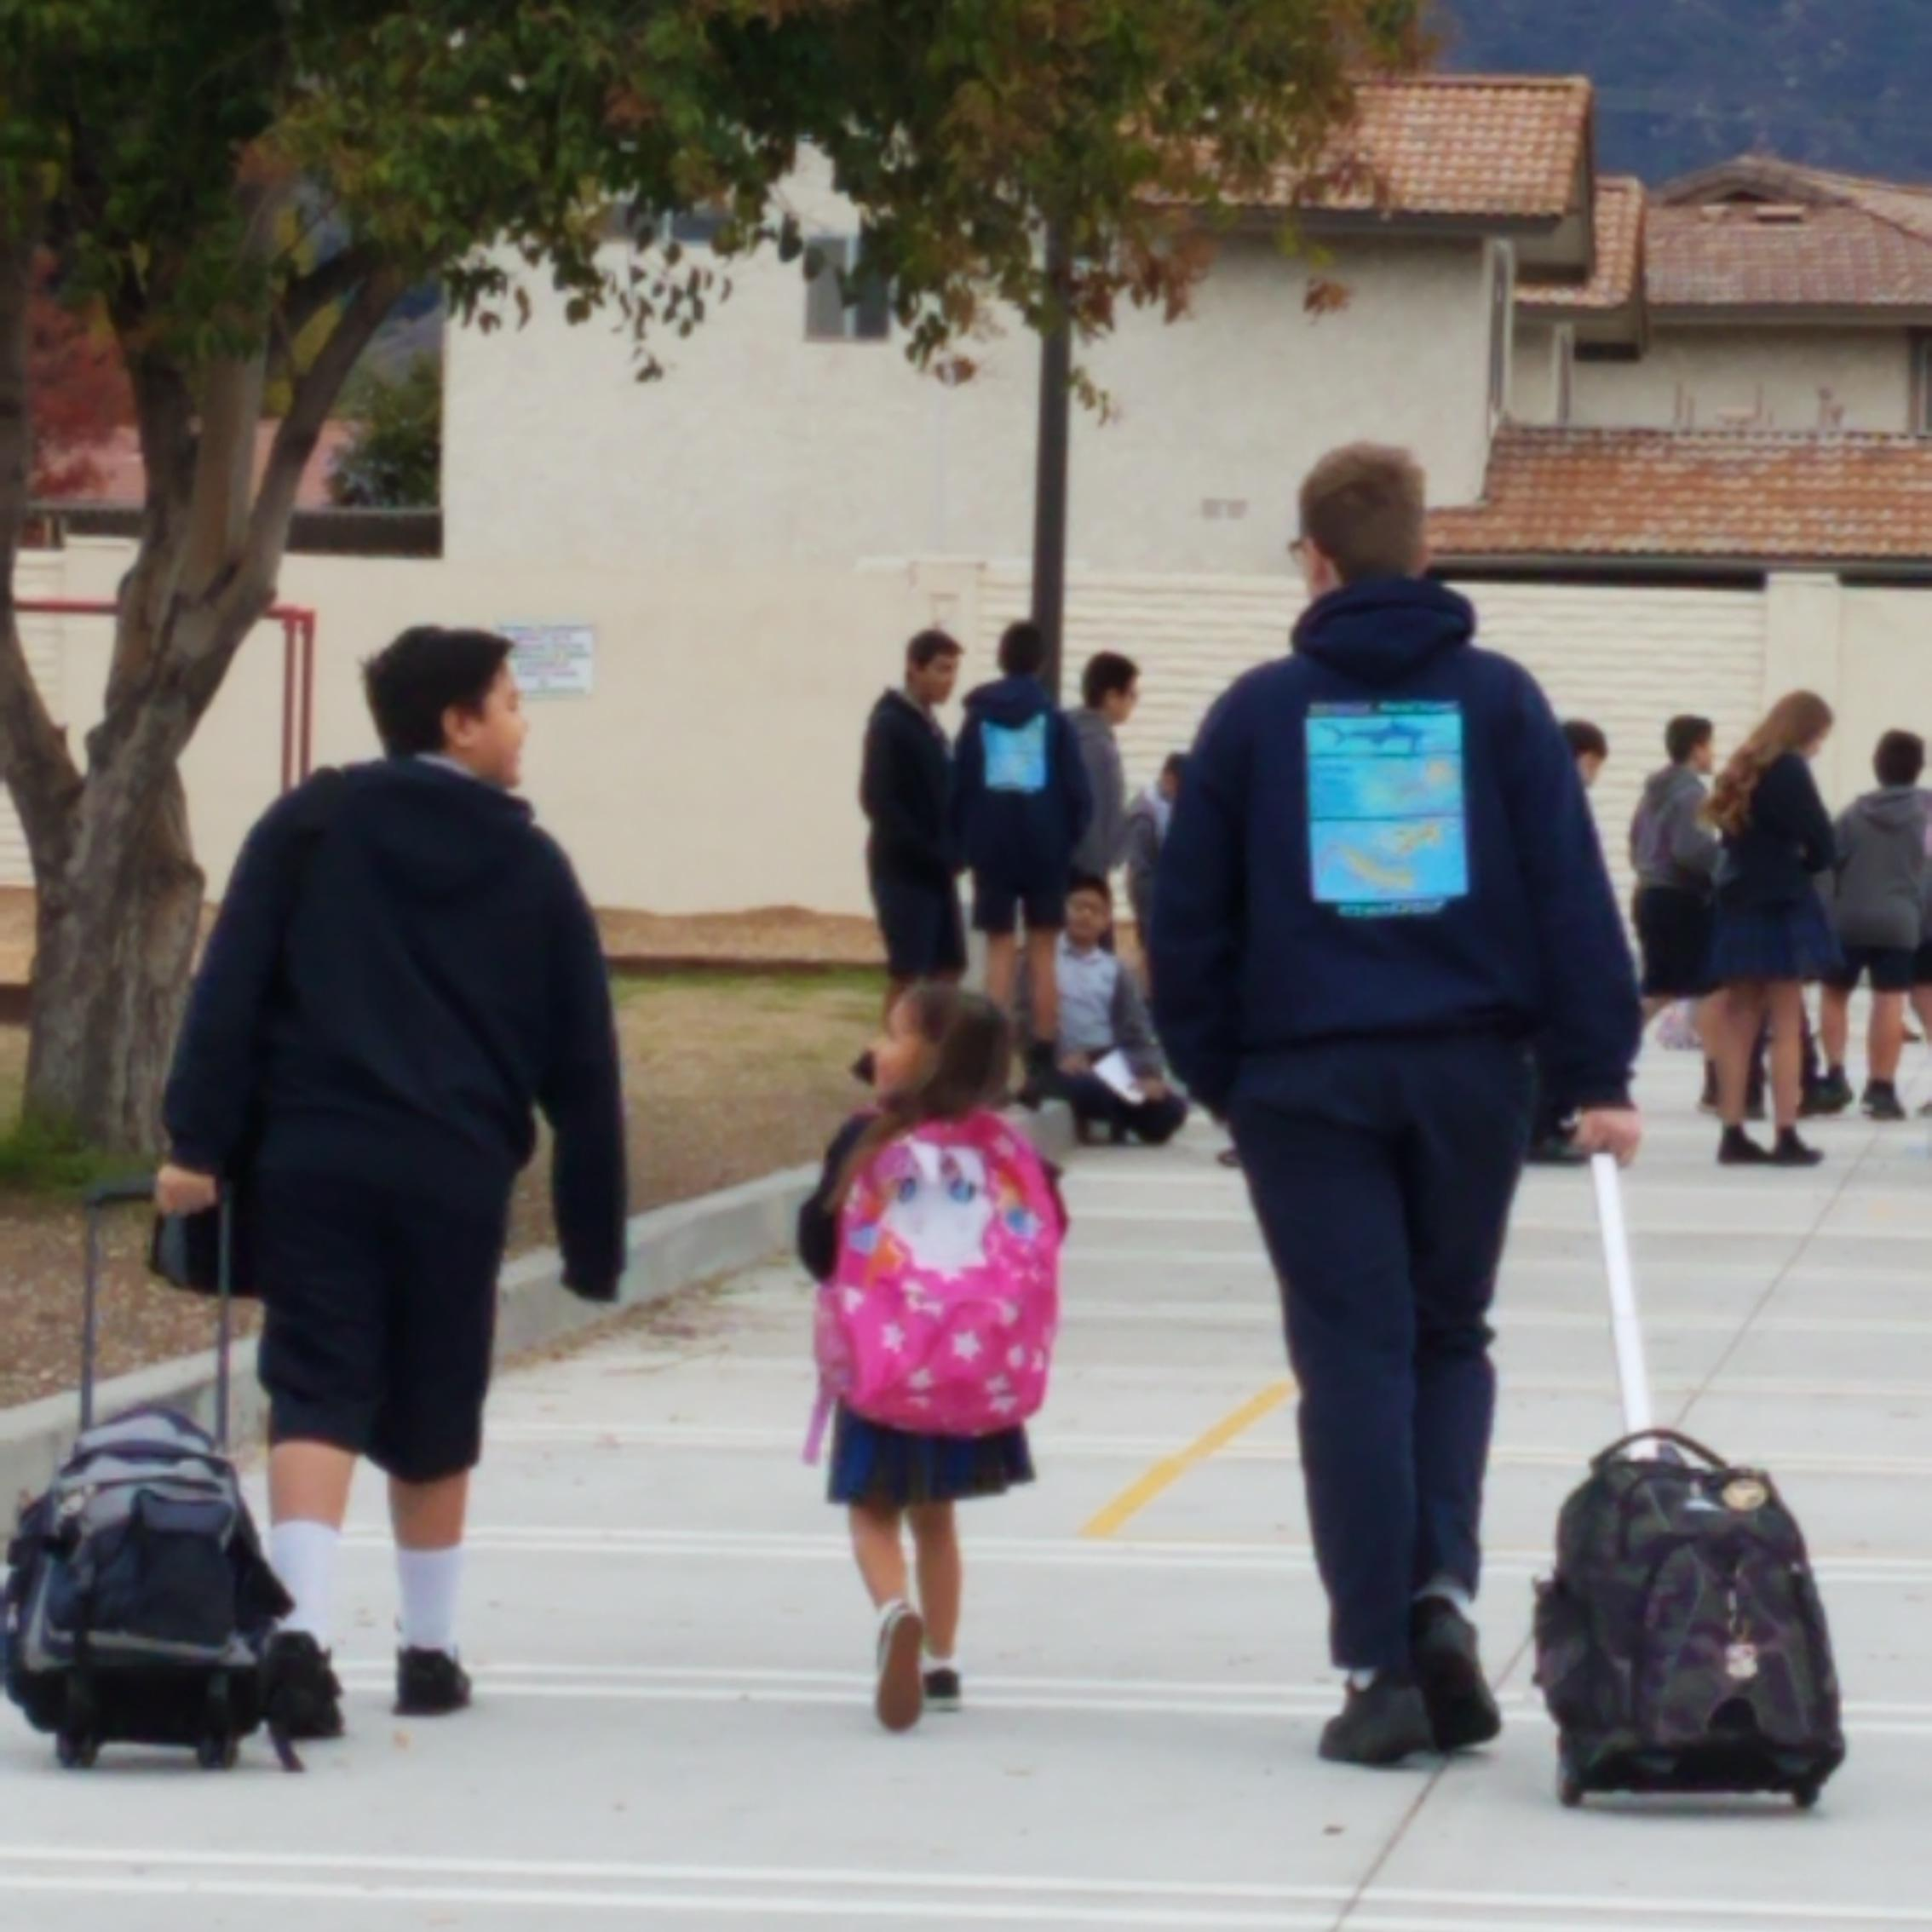 Older students walking a TK student to class